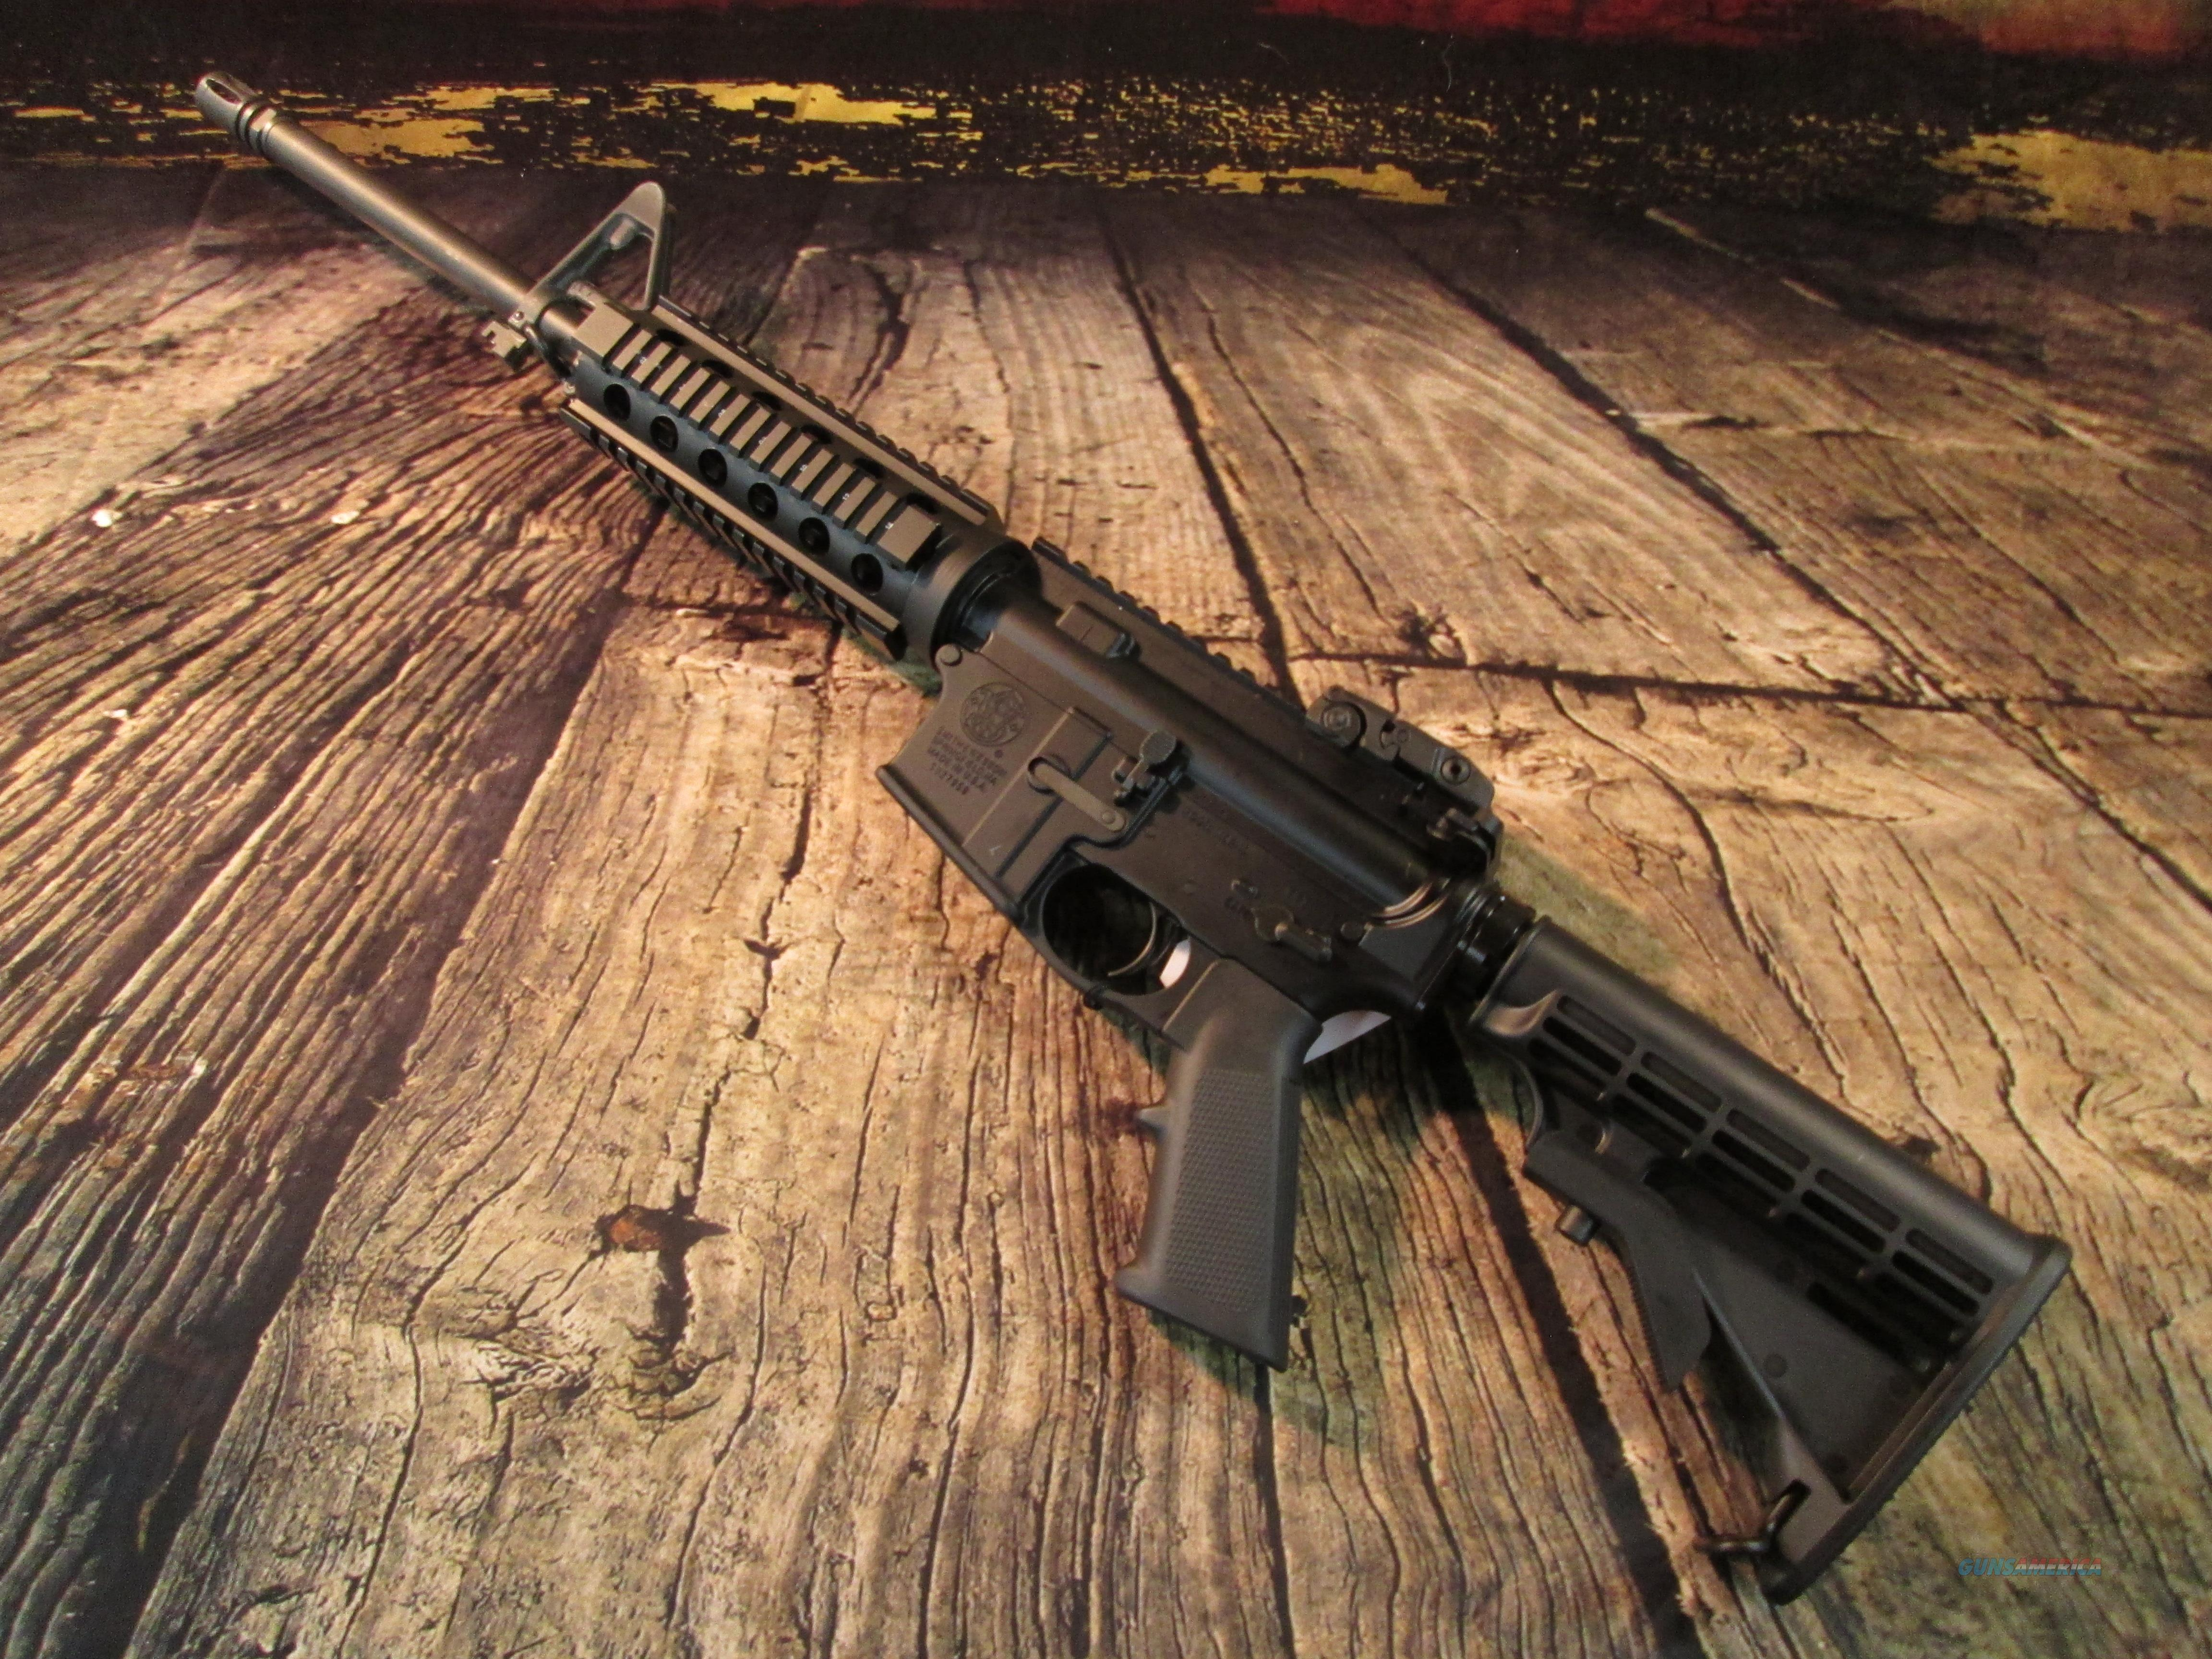 SMITH & WESSON M&P15 SPORT 5.56/223 CAL (62310)  Guns > Rifles > Smith & Wesson Rifles > M&P